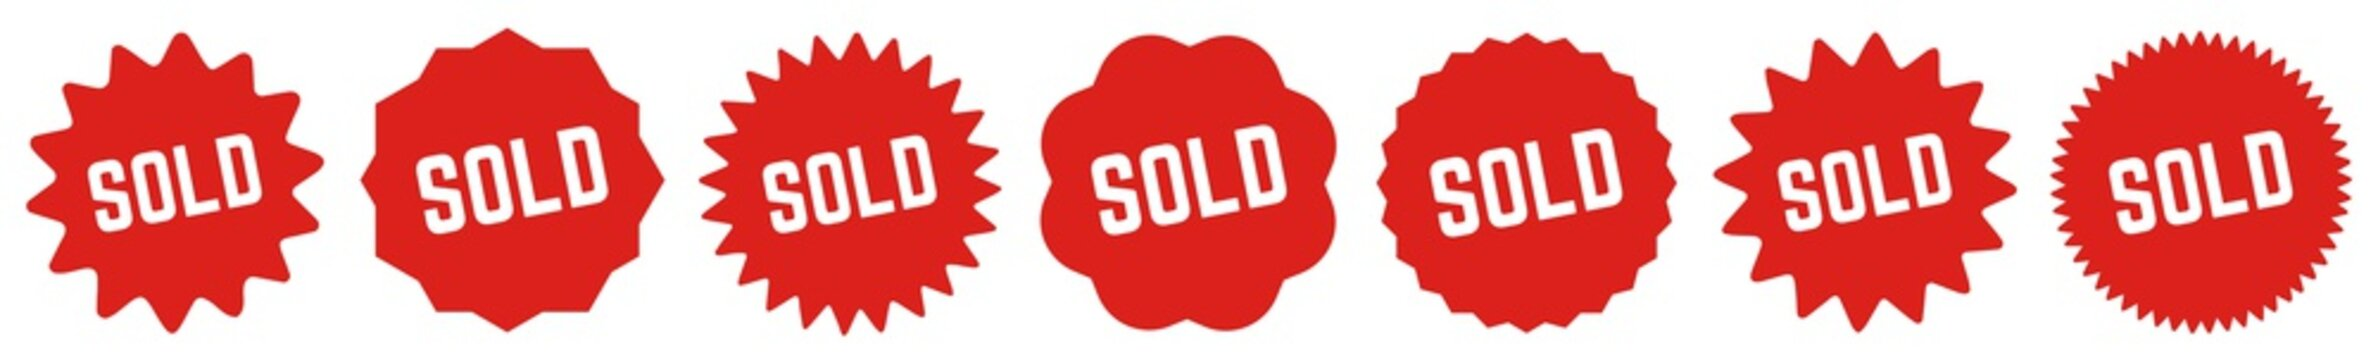 Sold Tag Red   Icon   Sticker   Deal Label   Variations